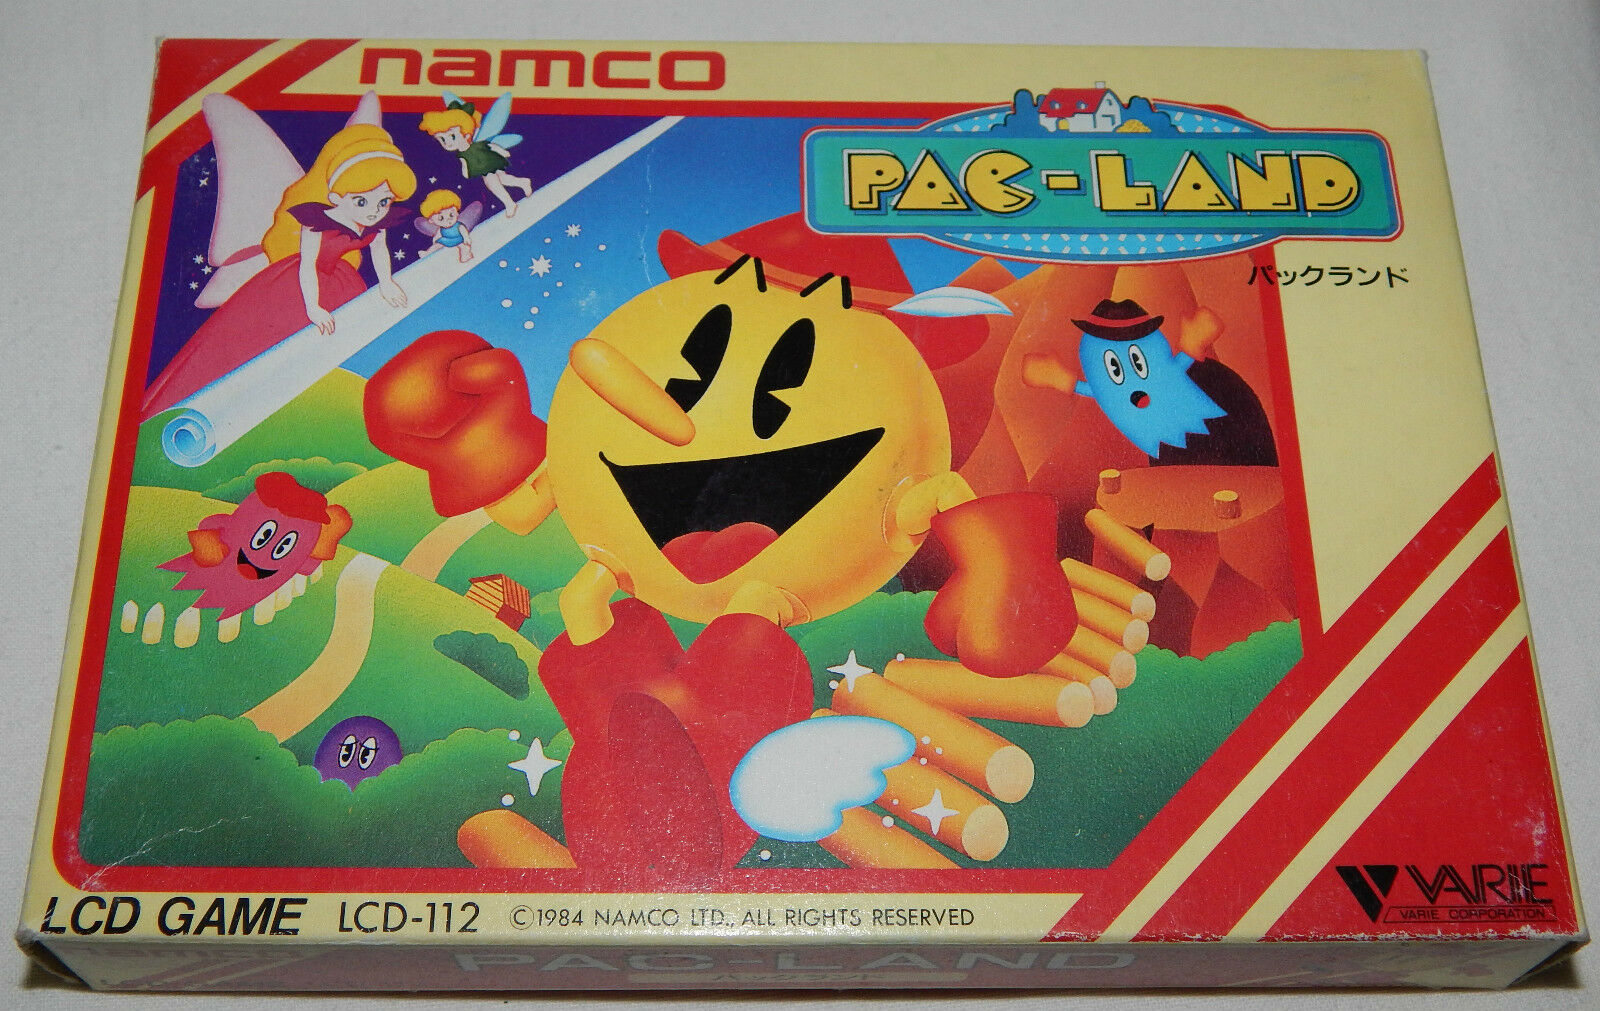 VINTAGE PAC-LAND (PACMAN) LCD HANDHELD GAME BY NAMCO IN BOX BOXED NOS